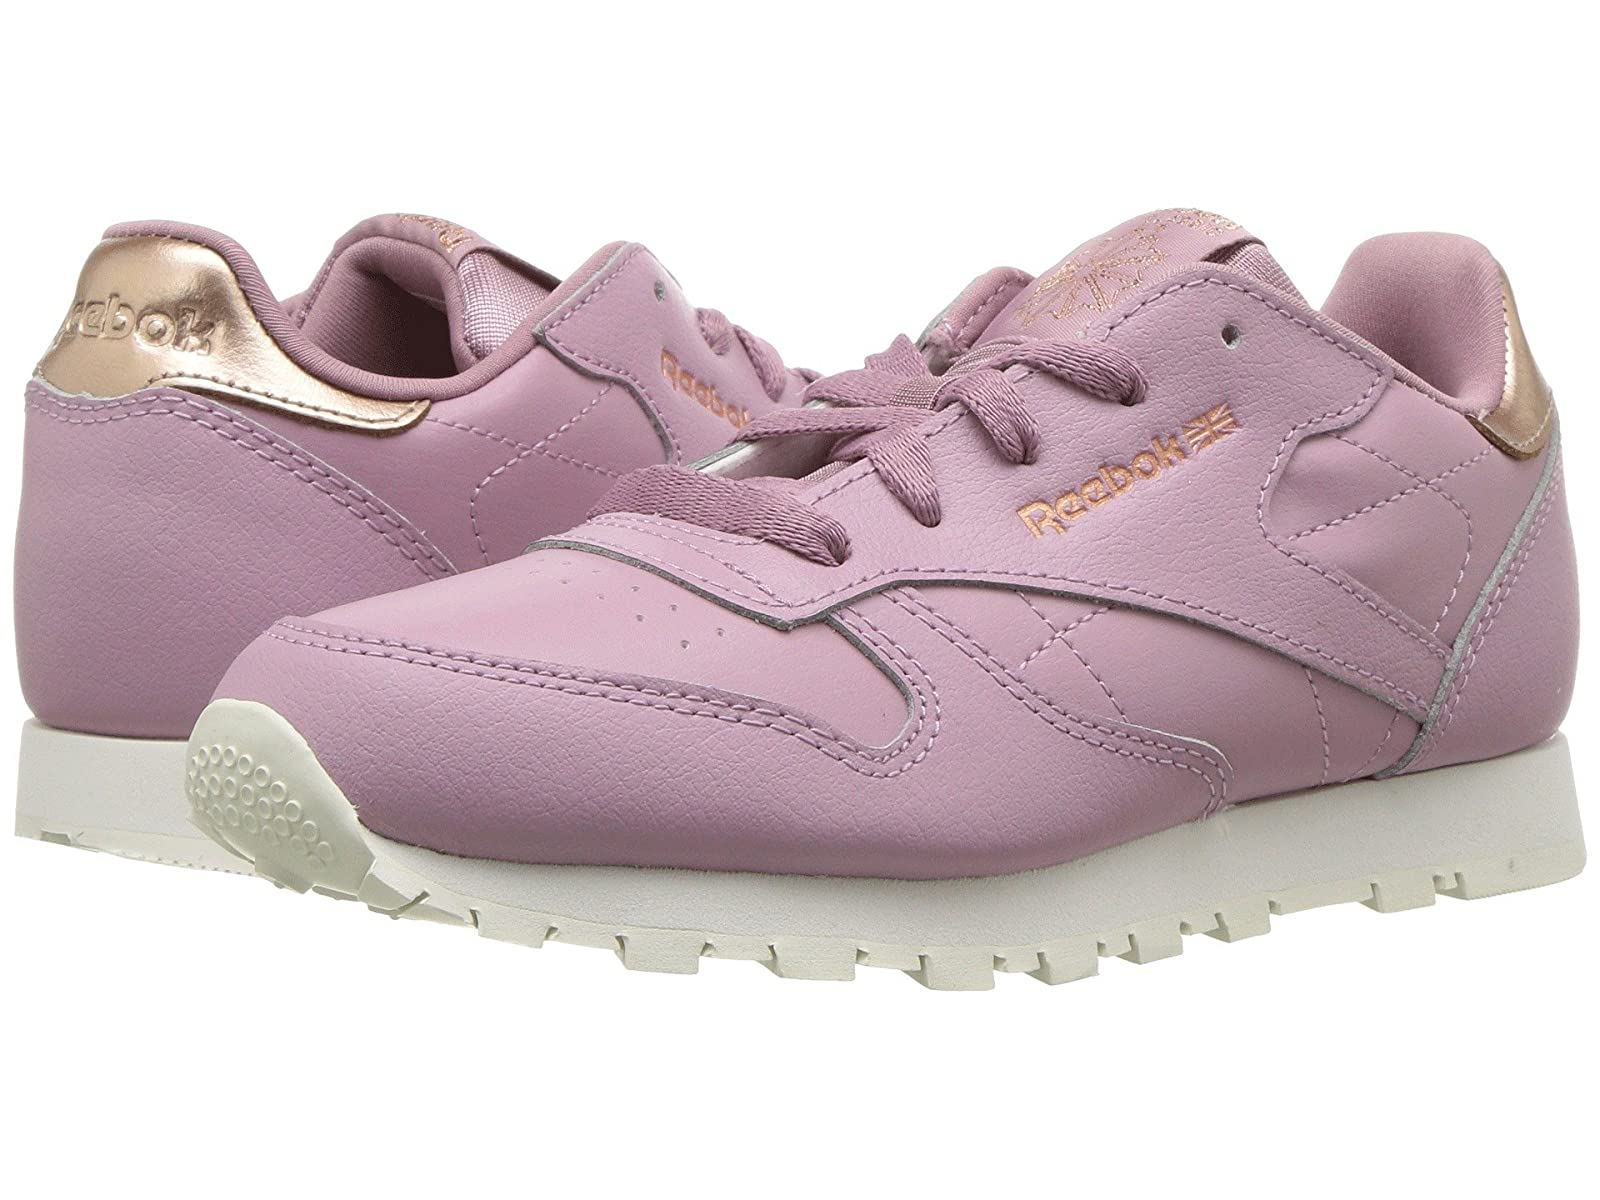 Reebok Kids Classic Leather (Little Kid)Atmospheric grades have affordable shoes